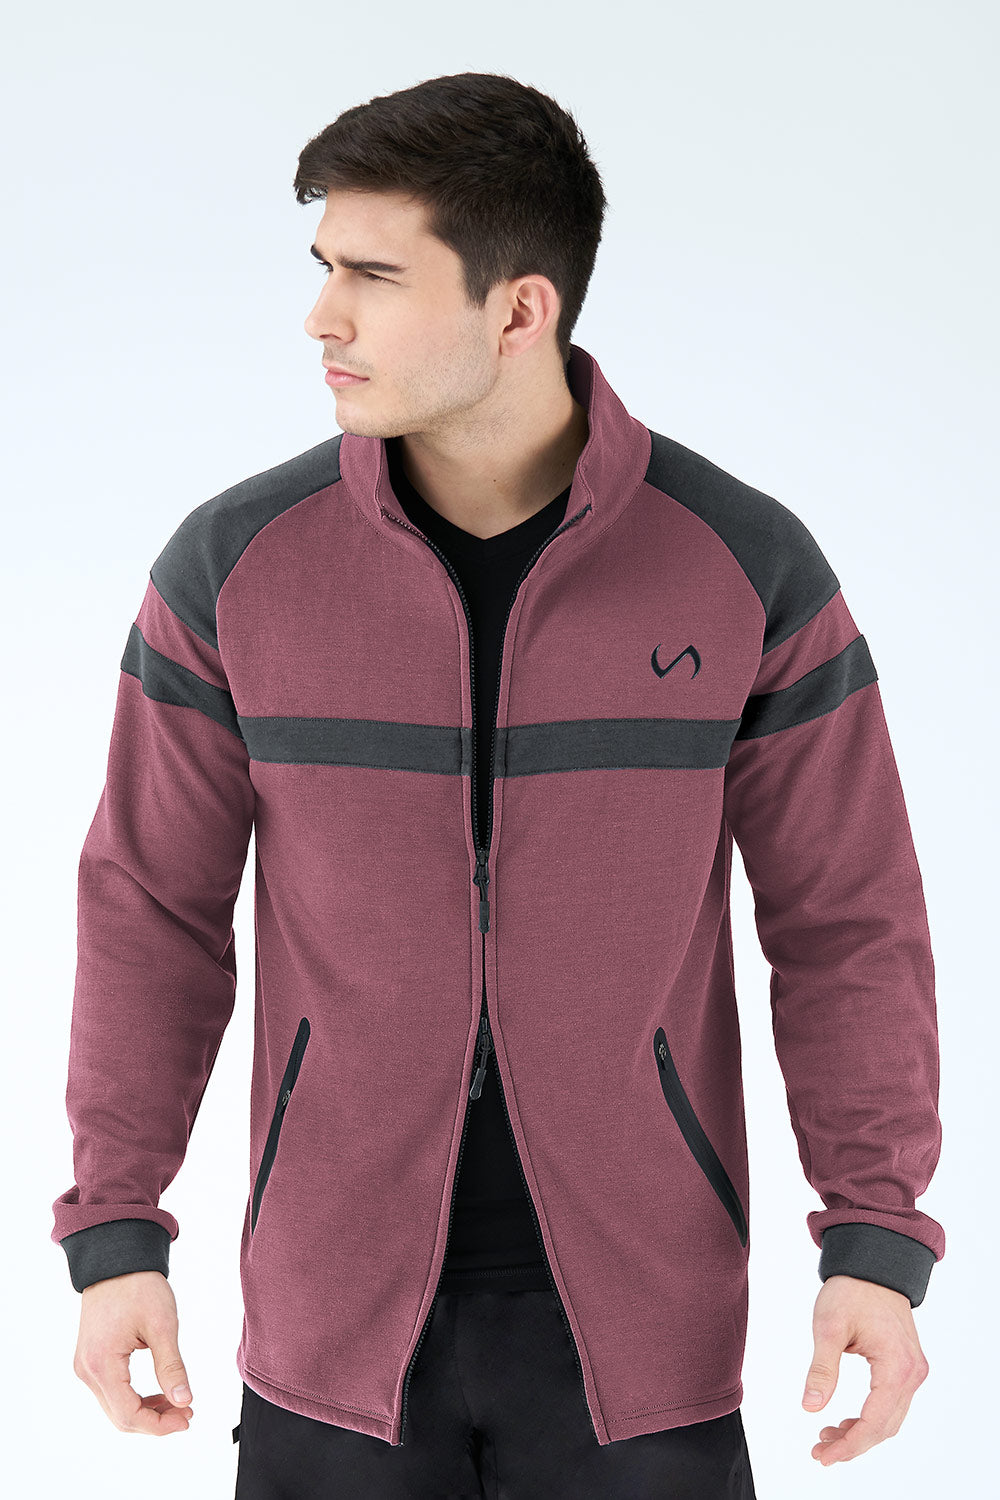 TLF Techne Athletic Jacket - Loganberry Heather - TLF Apparel | Take Life Further